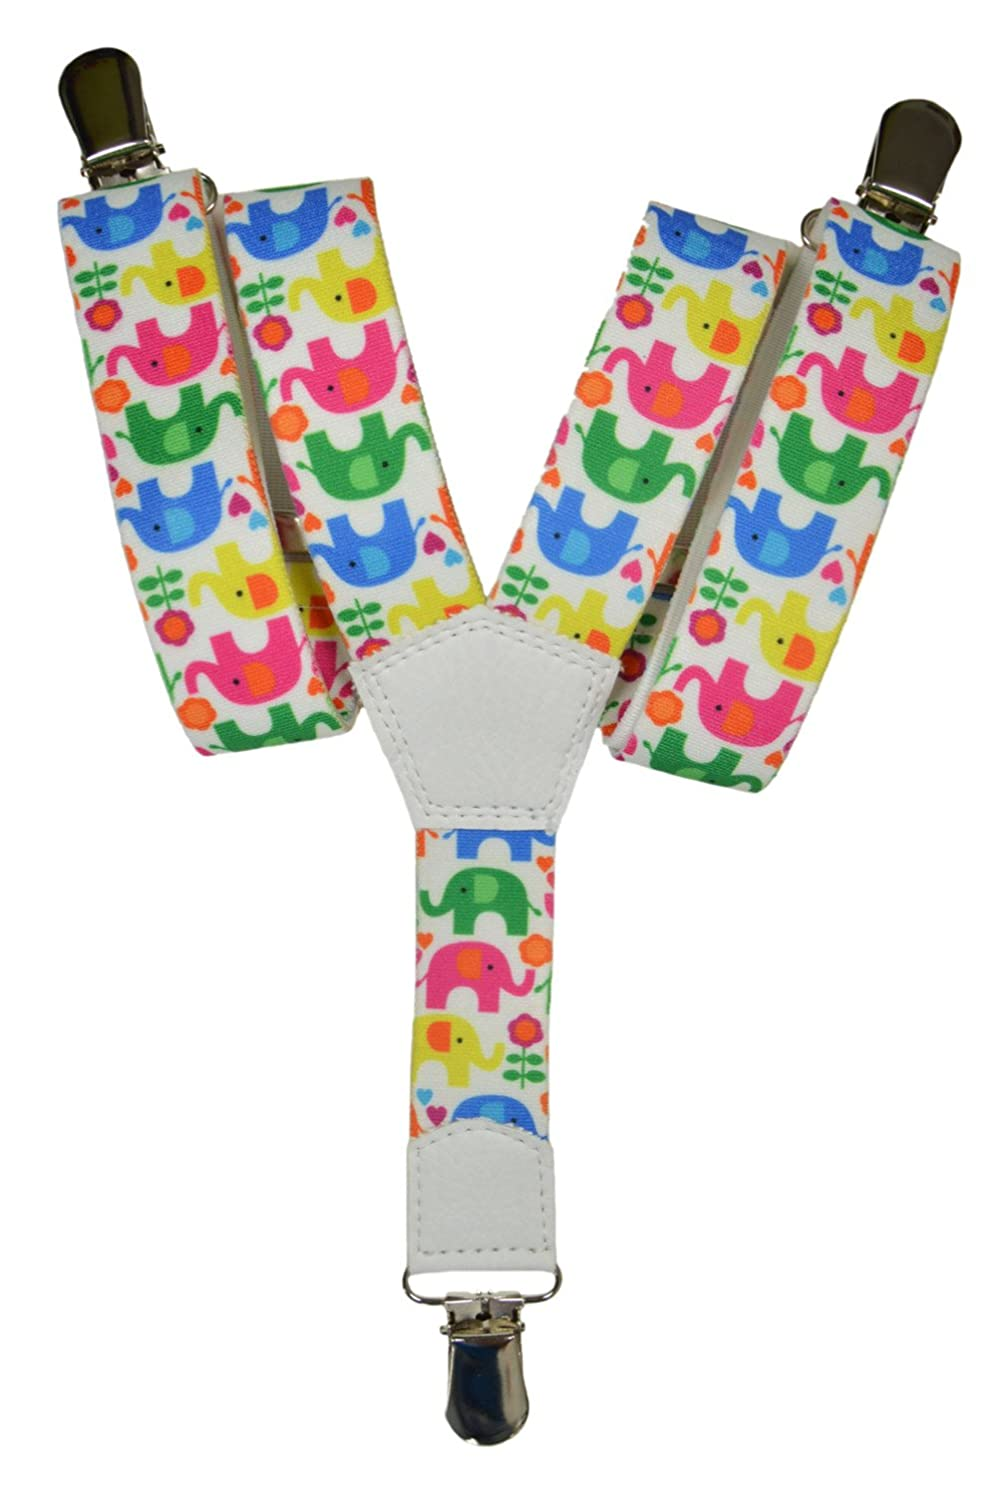 Childrens 1-5 Years Elasticated Clip on Braces / Suspenders with Elephant Design KIDSBRACESJeleph-black